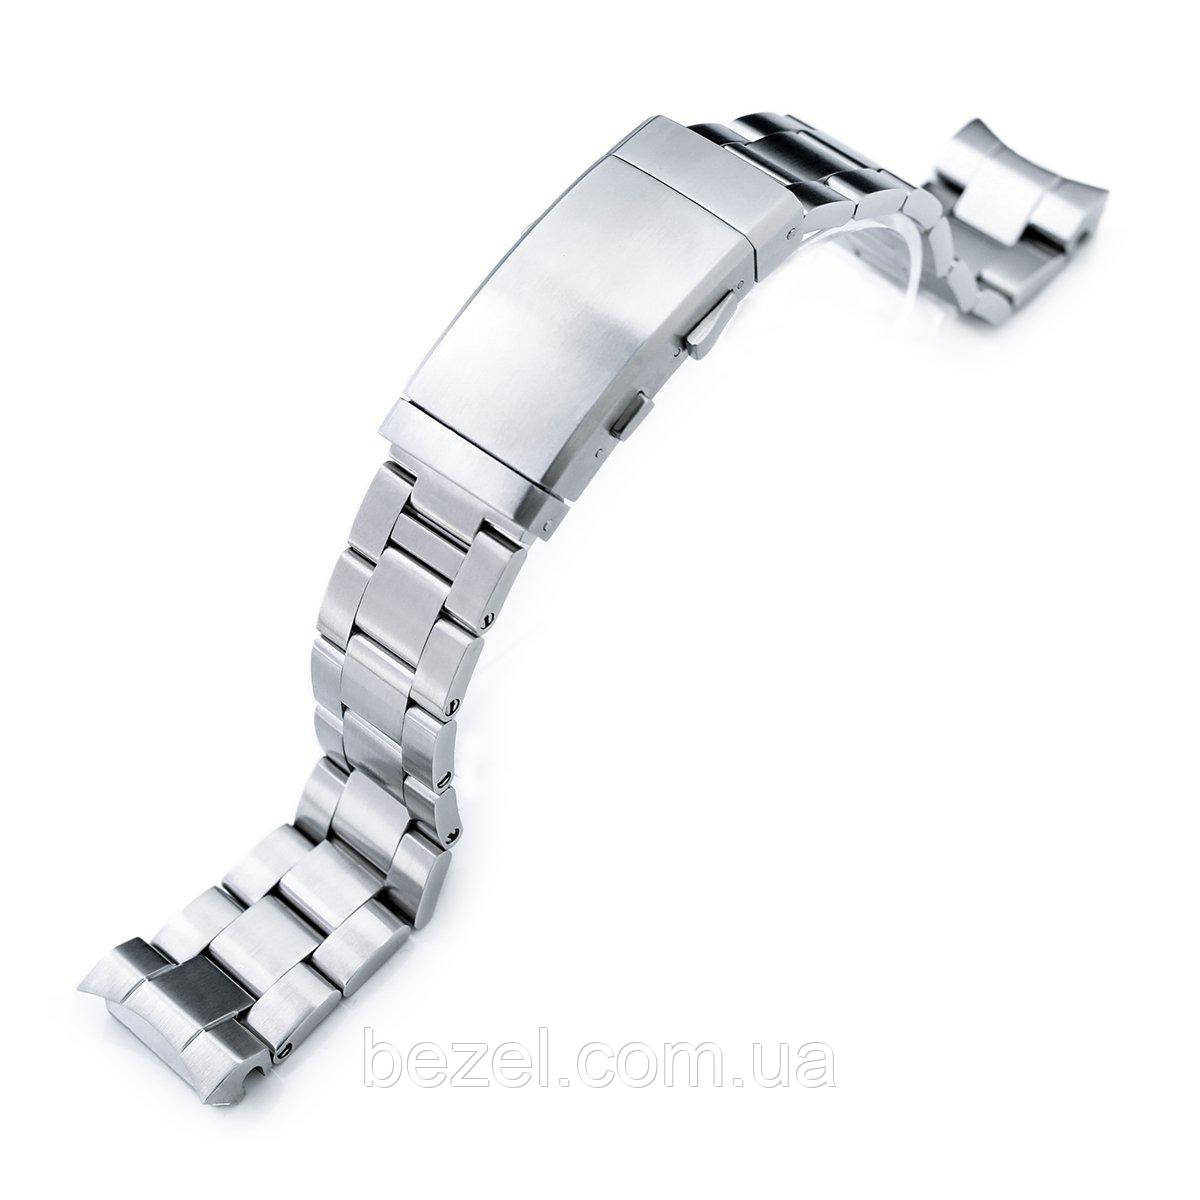 20mm Super Oyster watch band for Seiko MM300 Prospex Marinemaster SBDX001 SBDX017, Brushed, Wetsuit Ratchet Buckle